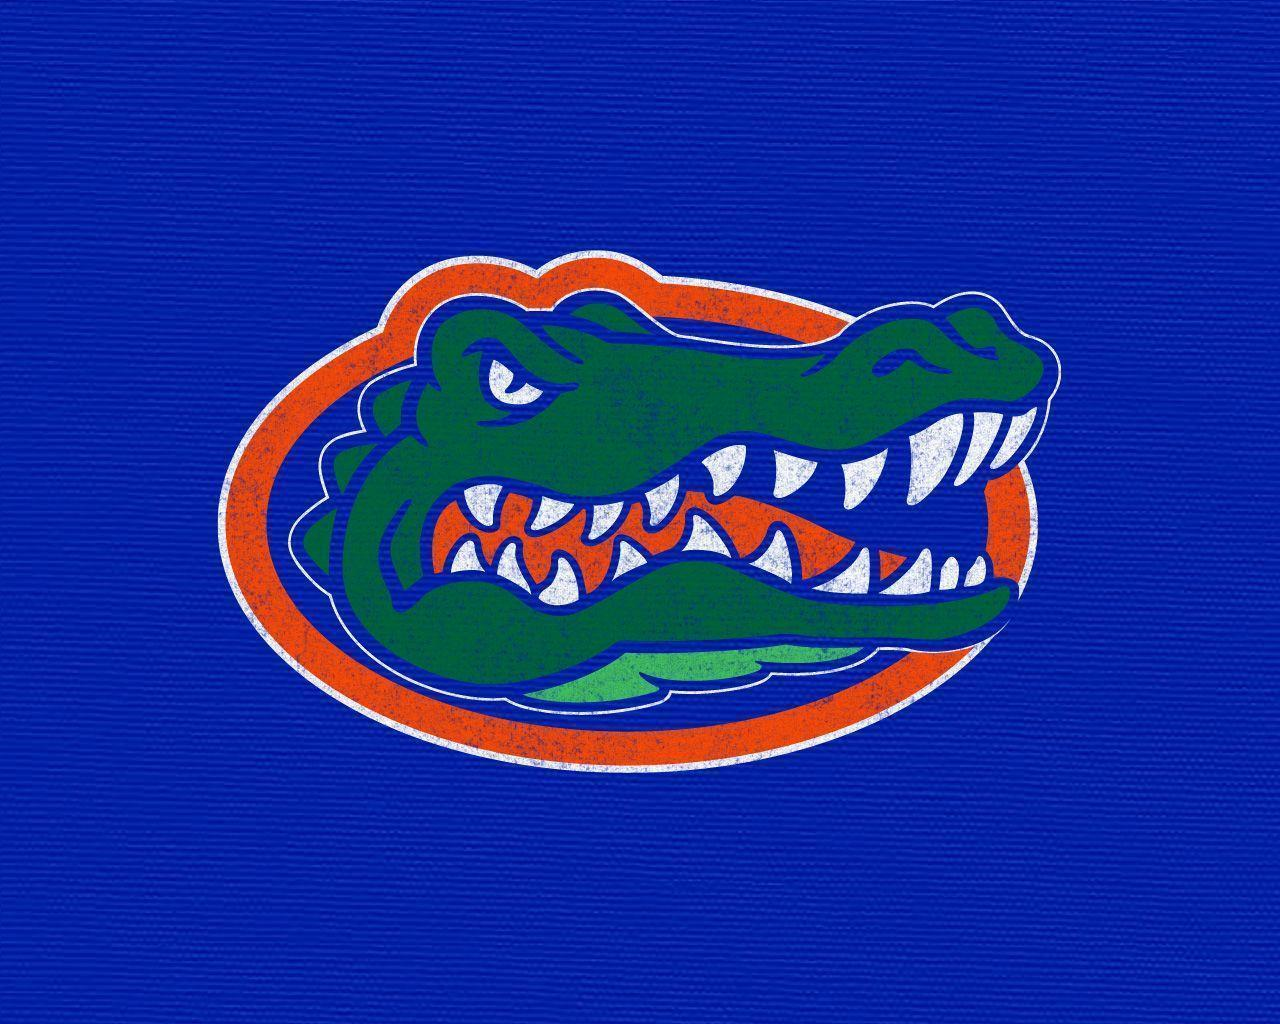 Wallpaper – Florida Gators Wallpaper